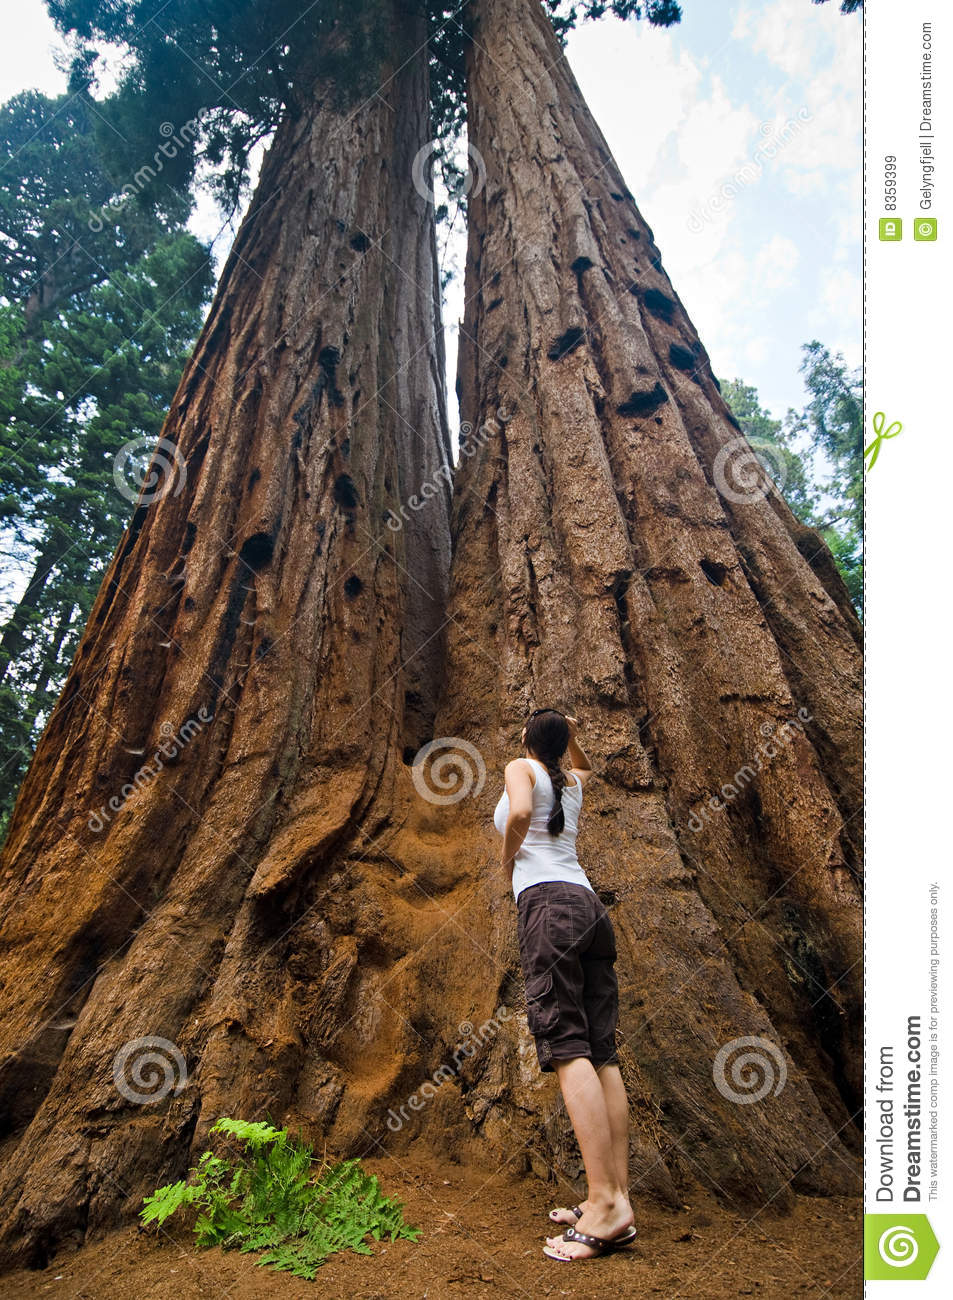 Sequoia National Park clipart #12, Download drawings